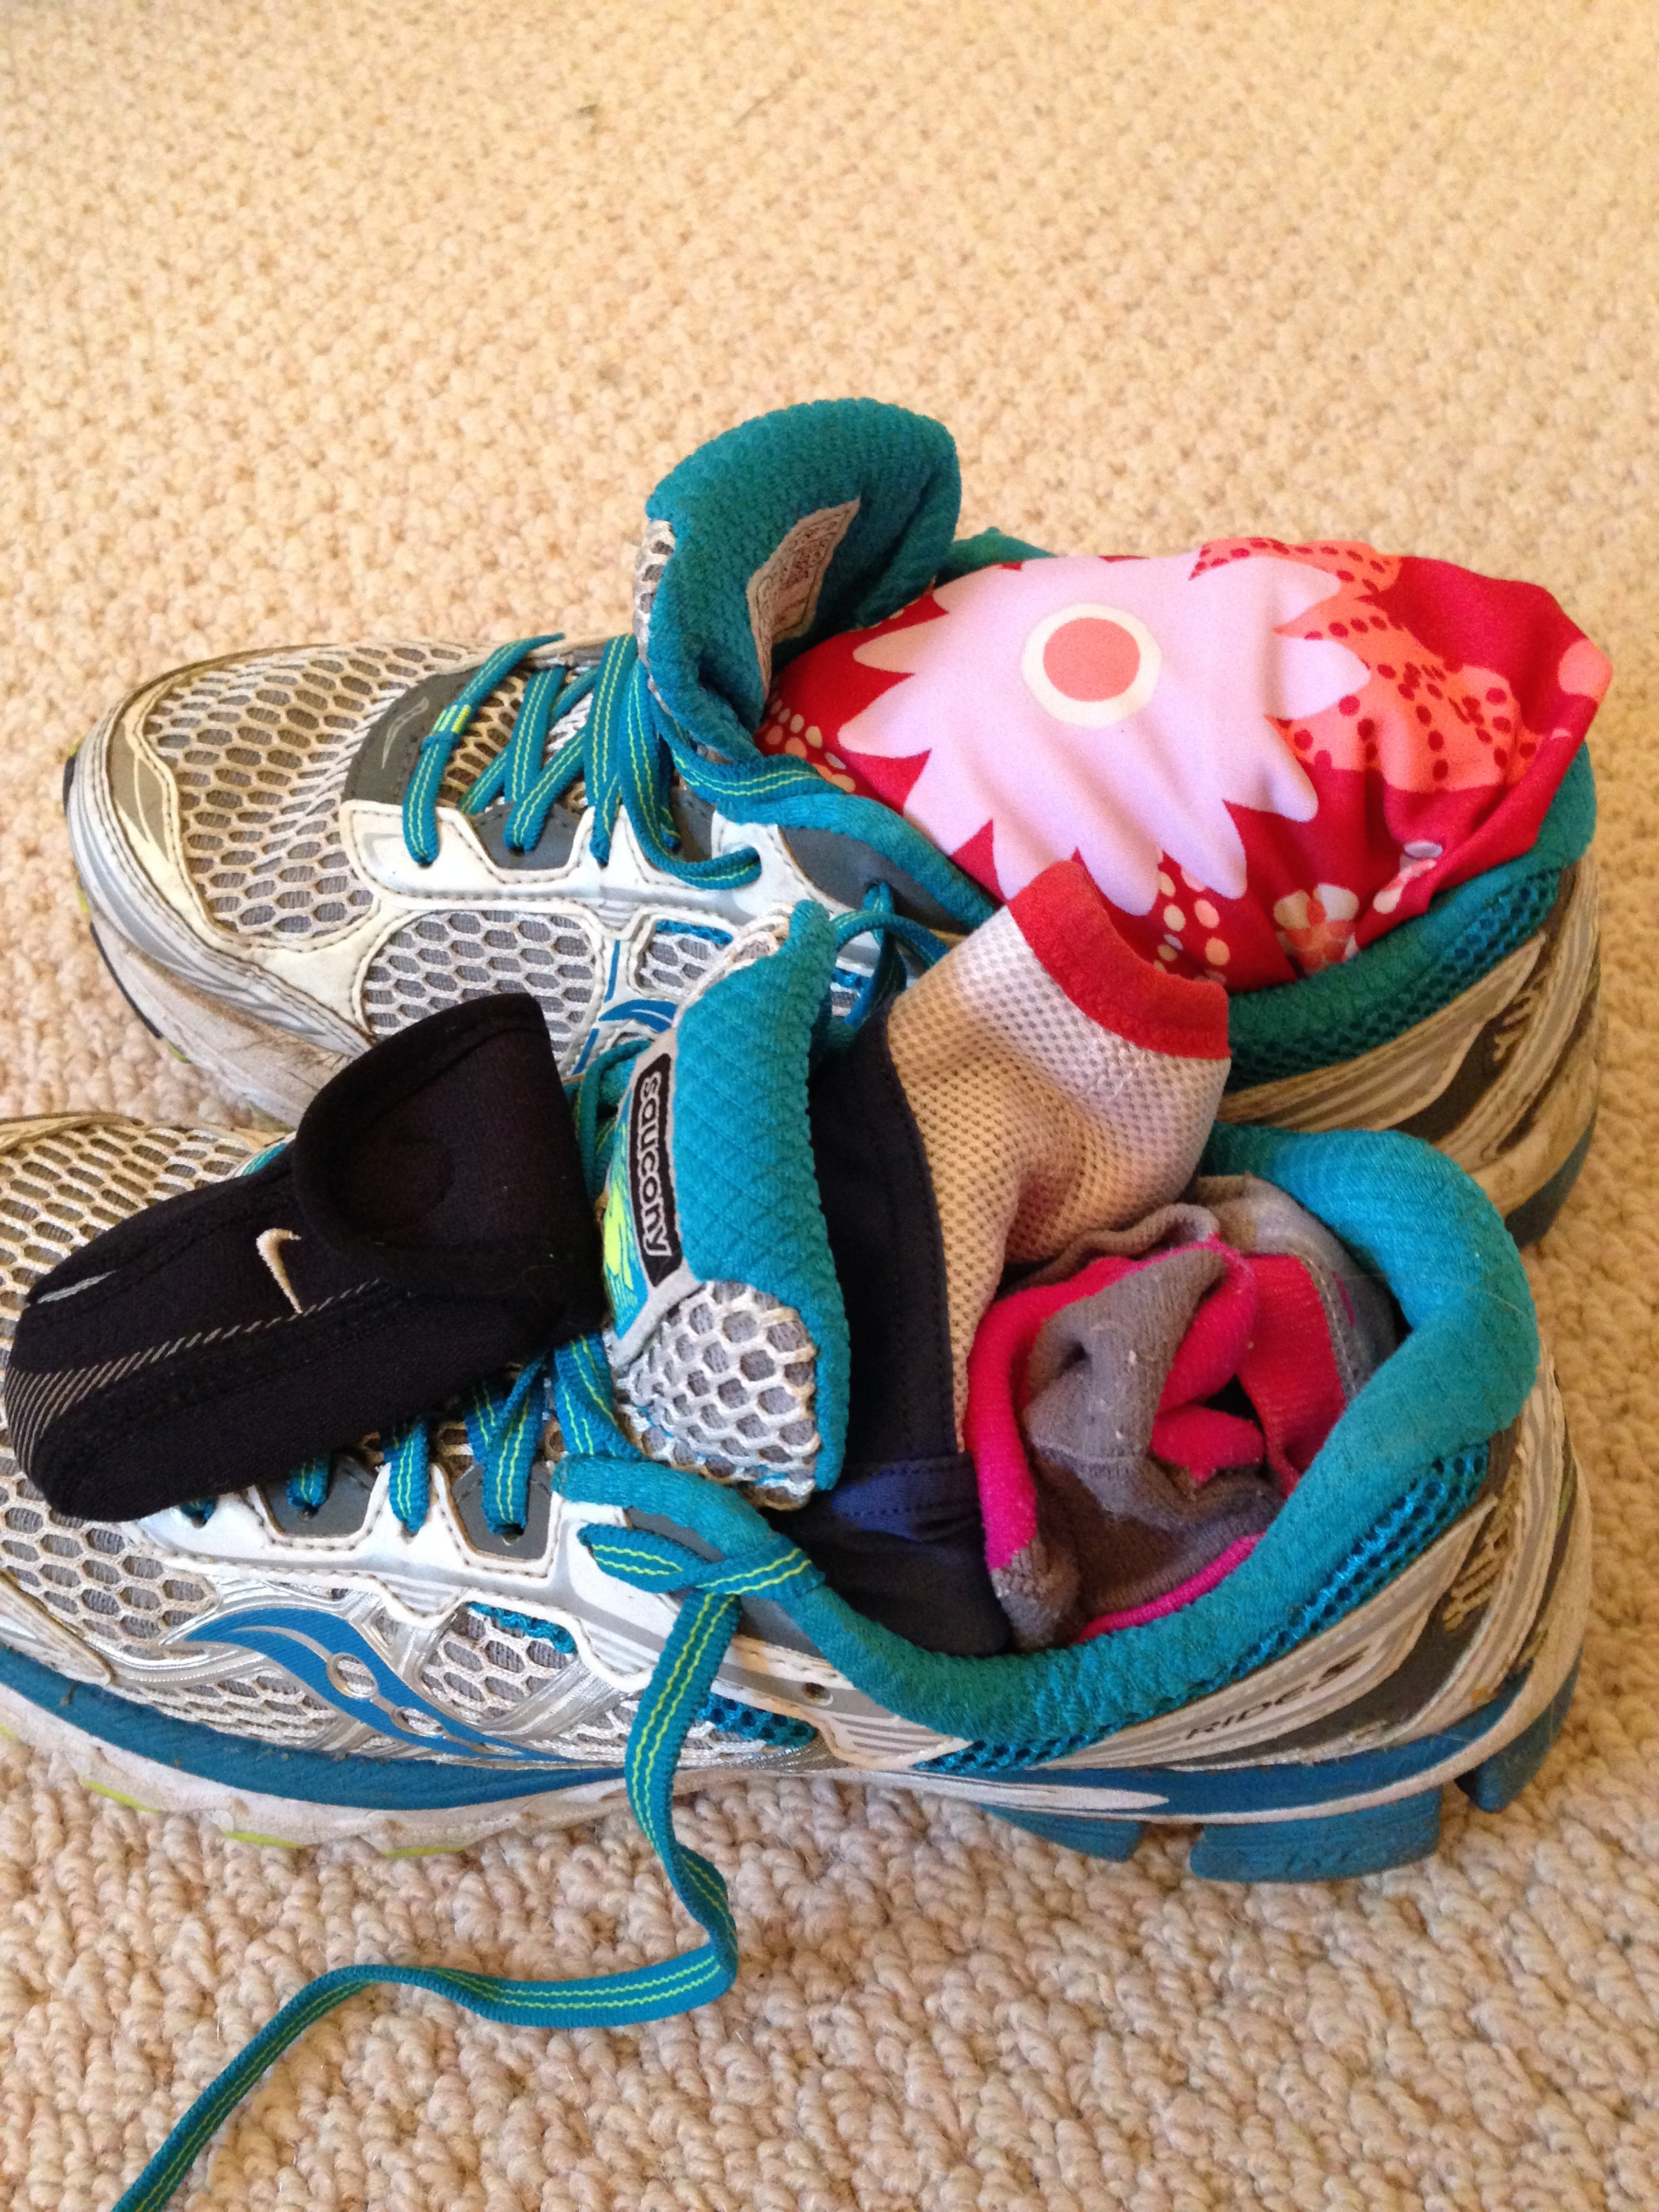 Saucony trainers, running kit for holiday